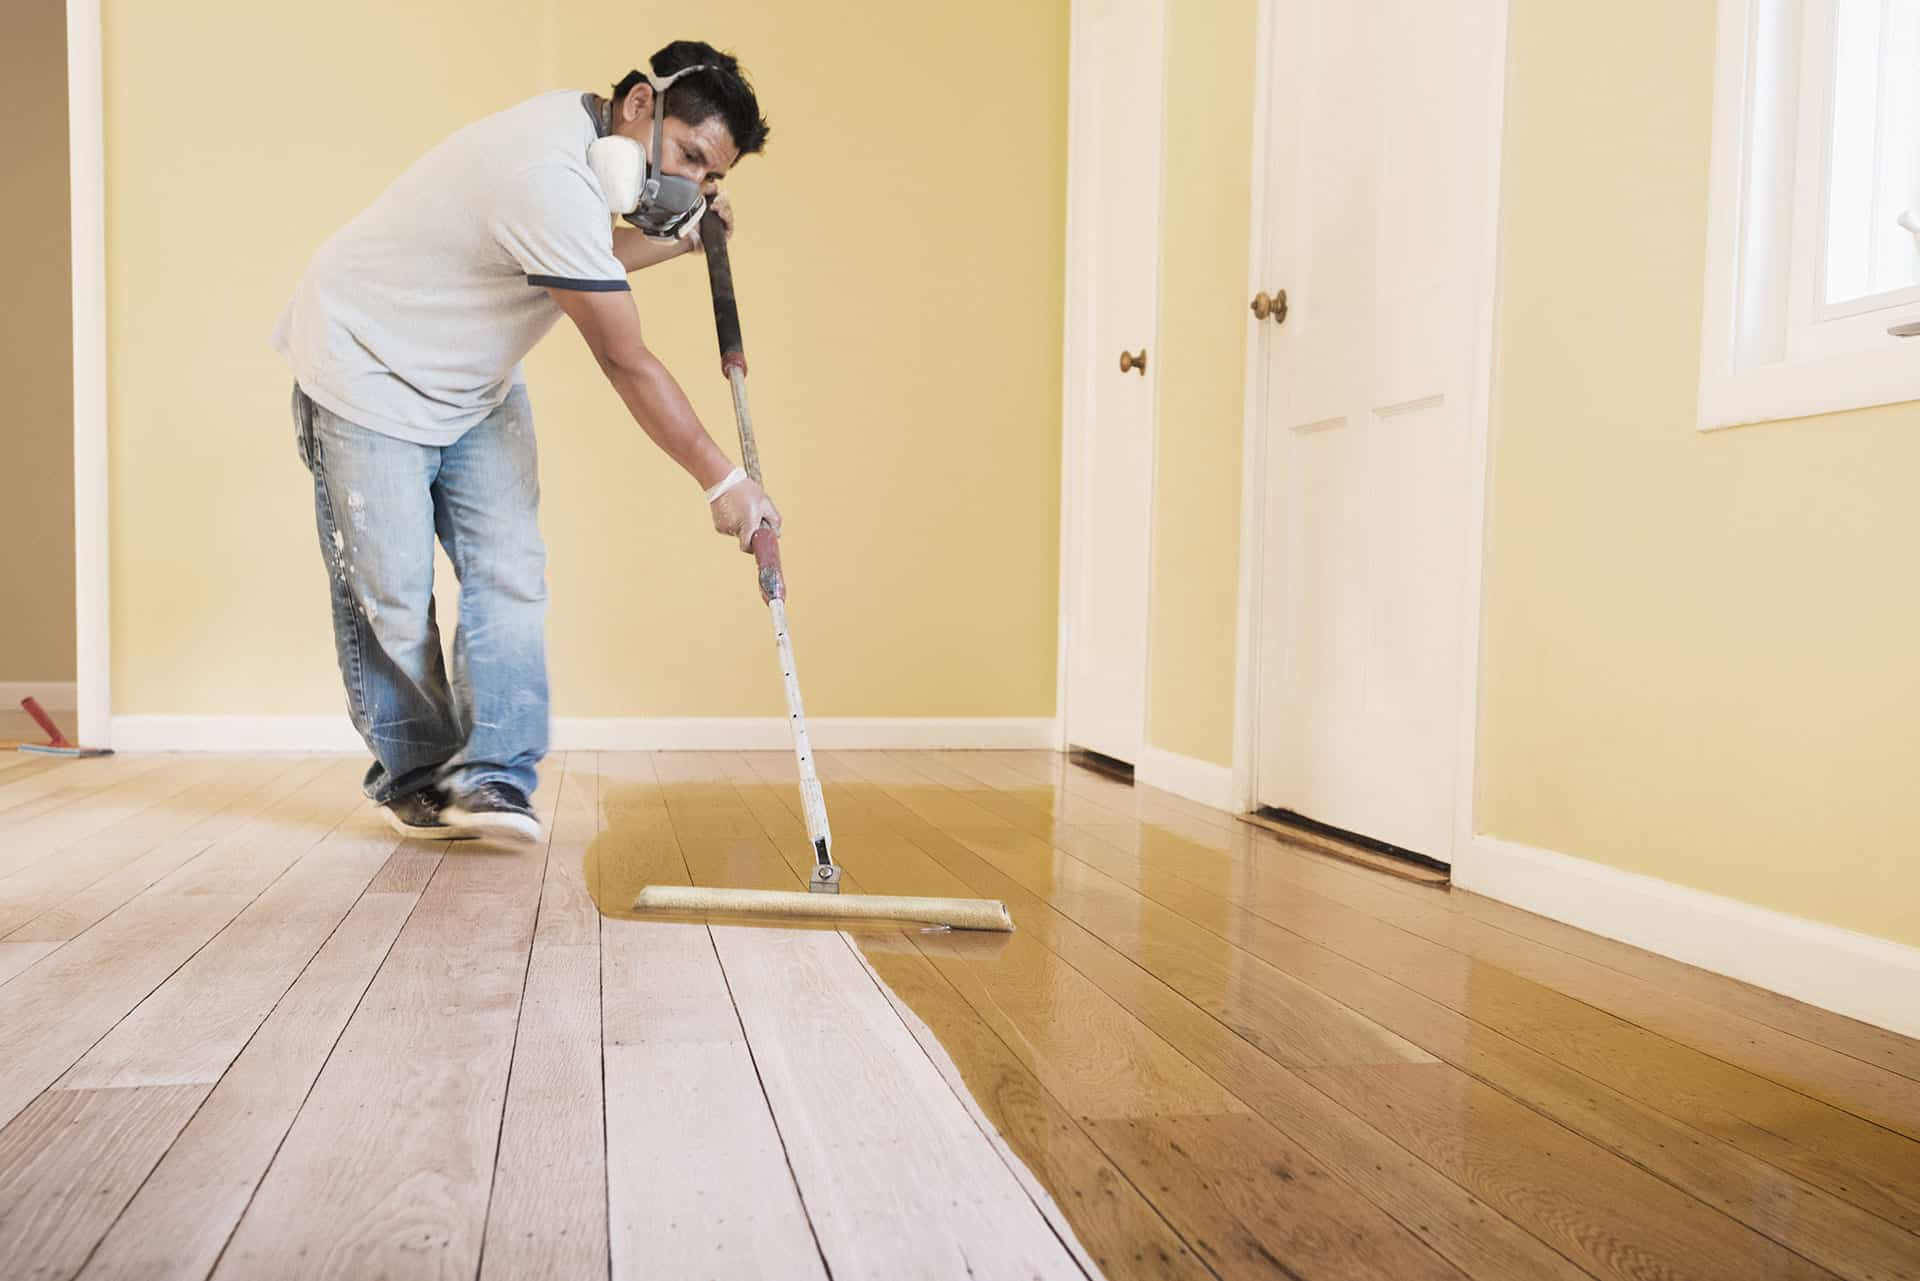 varnishing floors and decorating oxford